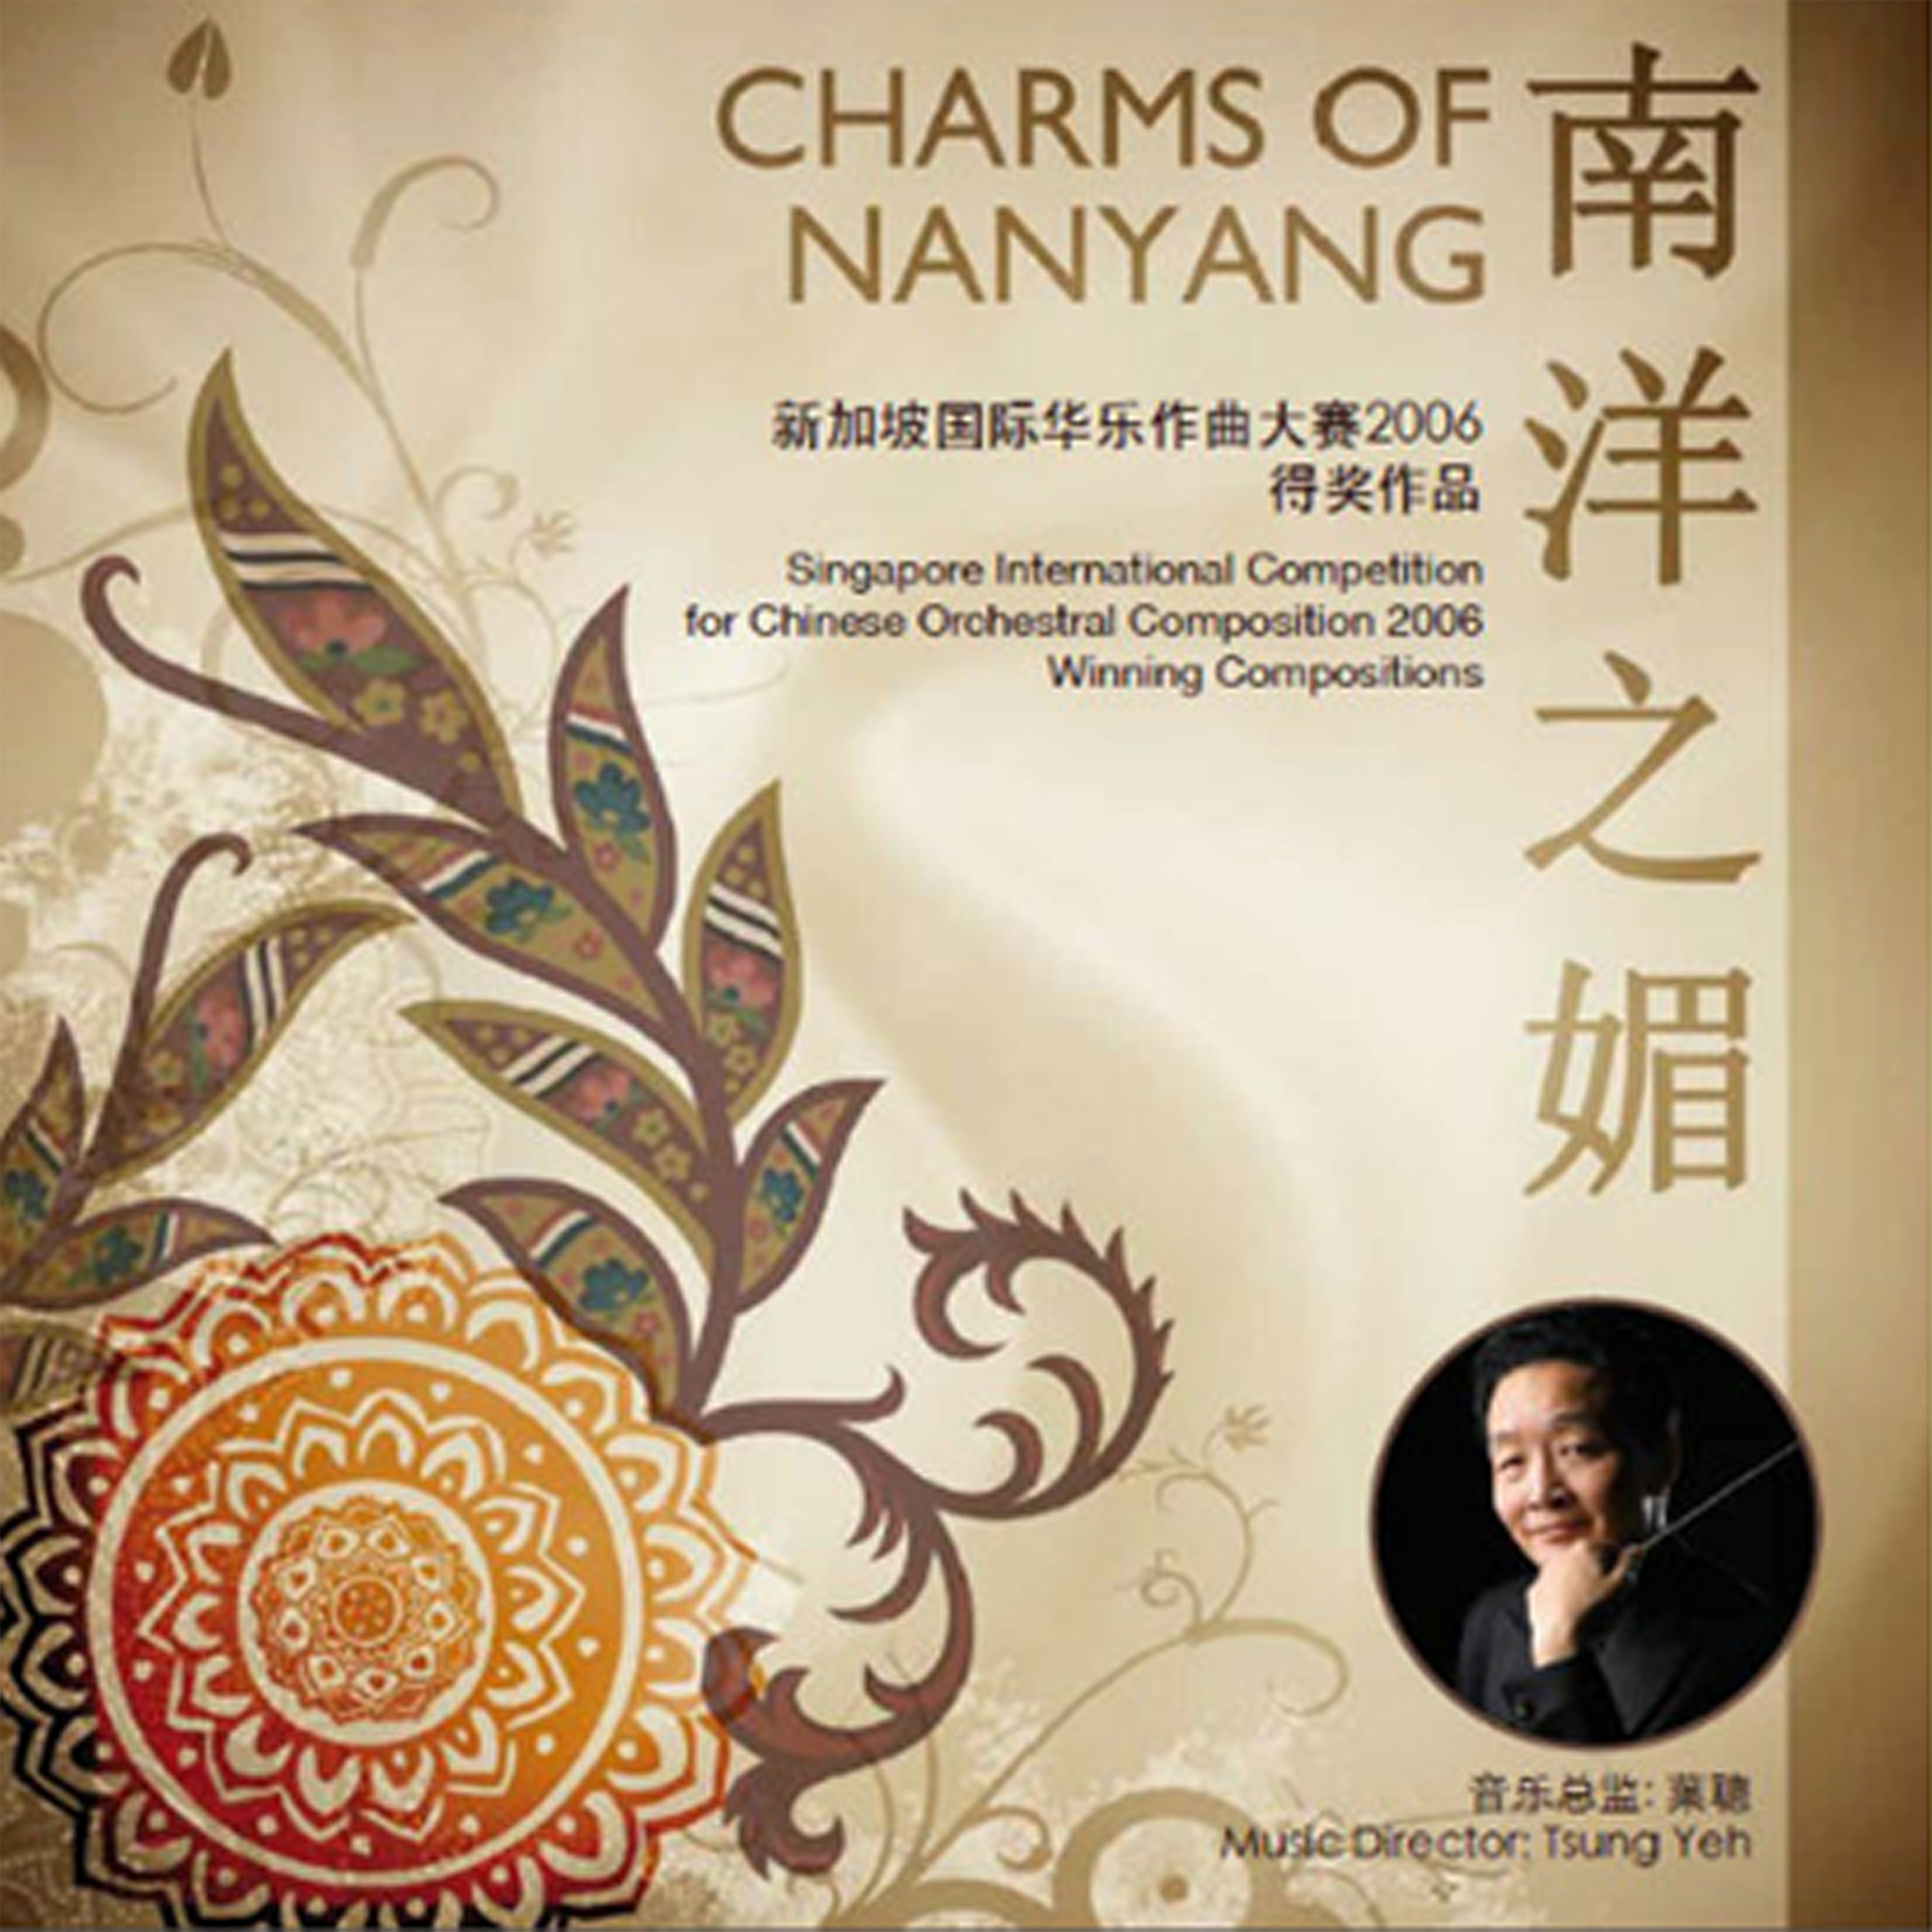 charms-of-nanyang-n Charms of Nanyang I